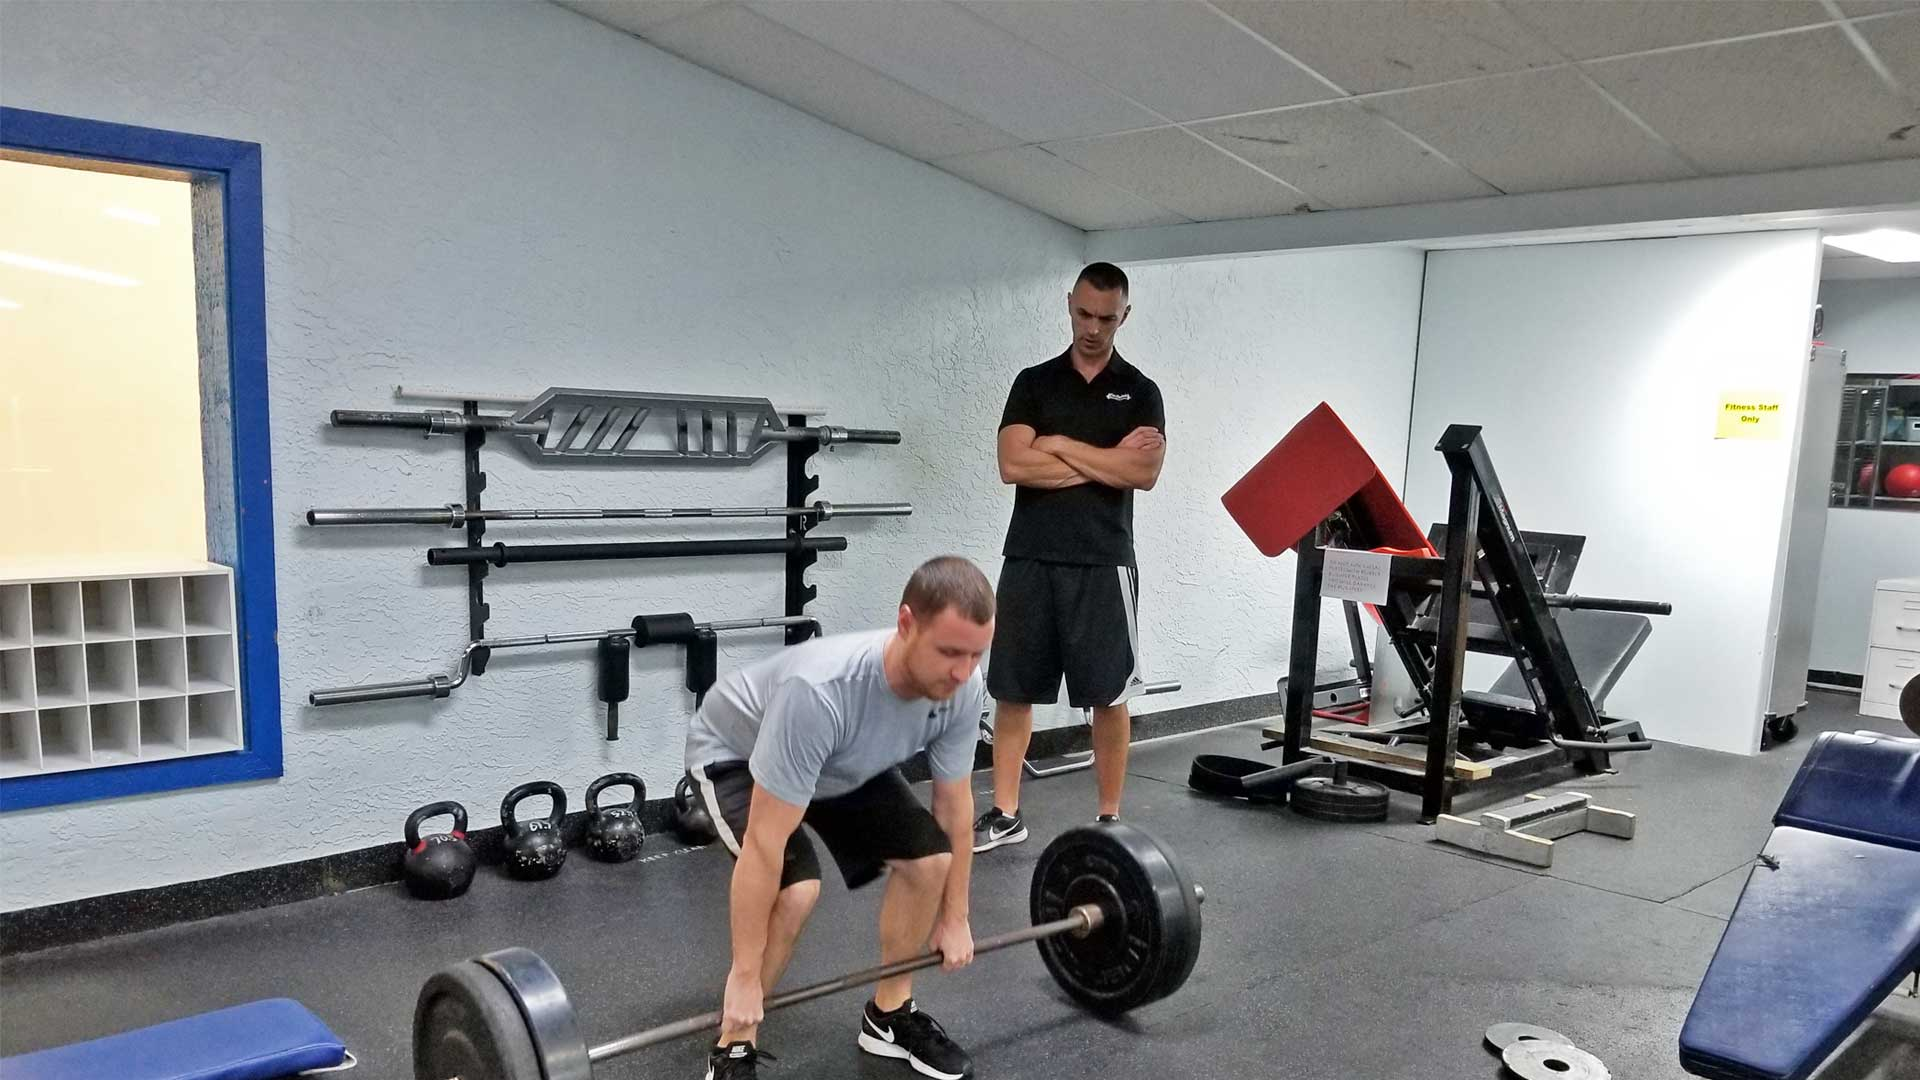 Francois founder of FastTwitch Fitness Performance training a client on how to do a proper dead lift in Apollo Beach